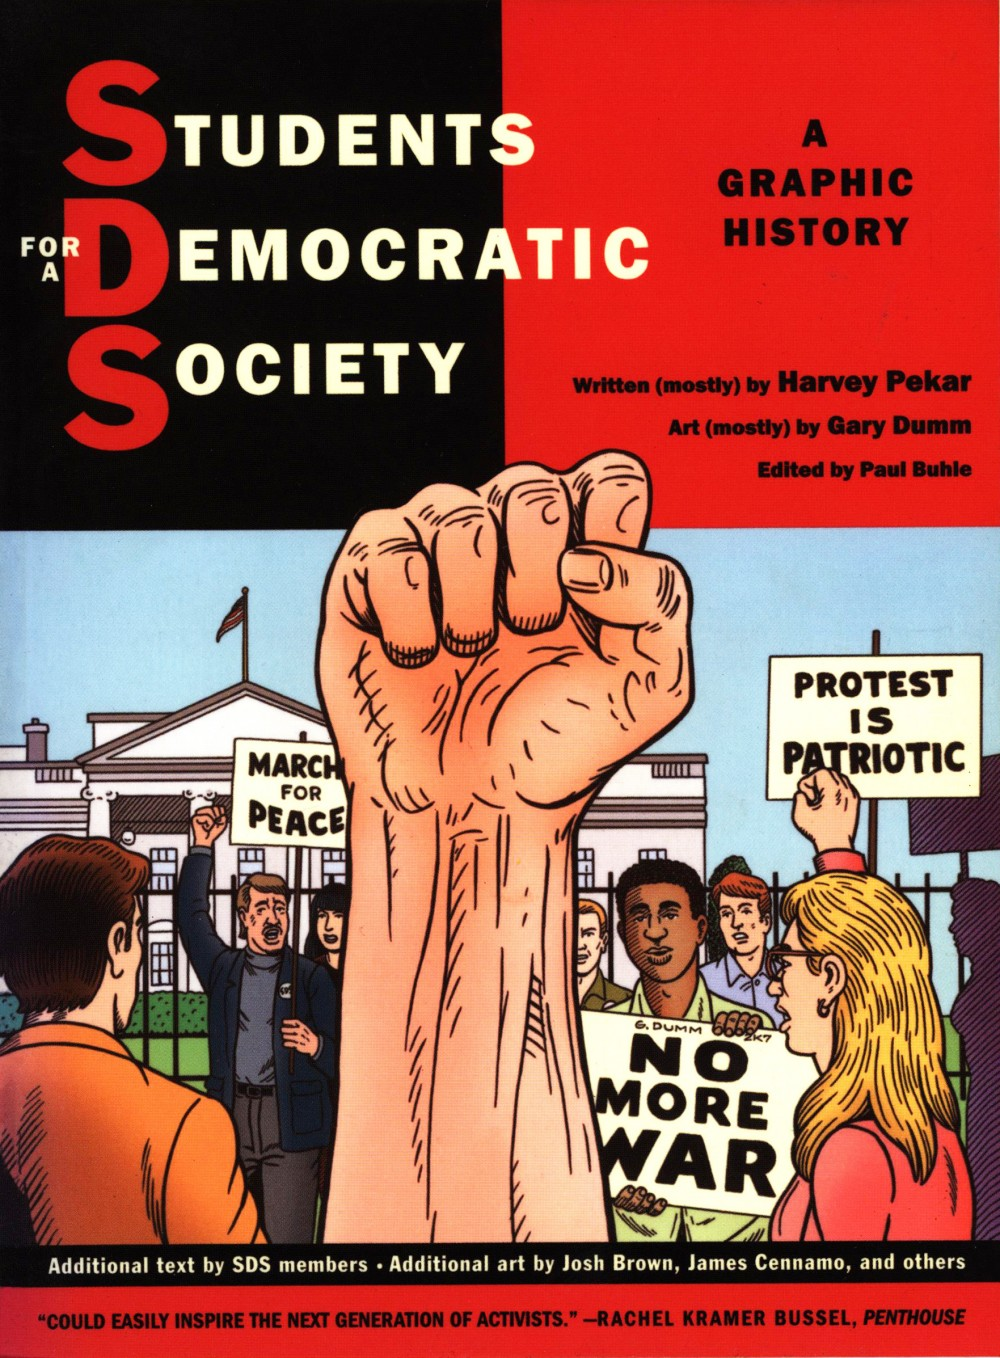 Harvey Pekar, Gary Dumm, Paul Buhle: Students for a Democratic Society - A Graphic History